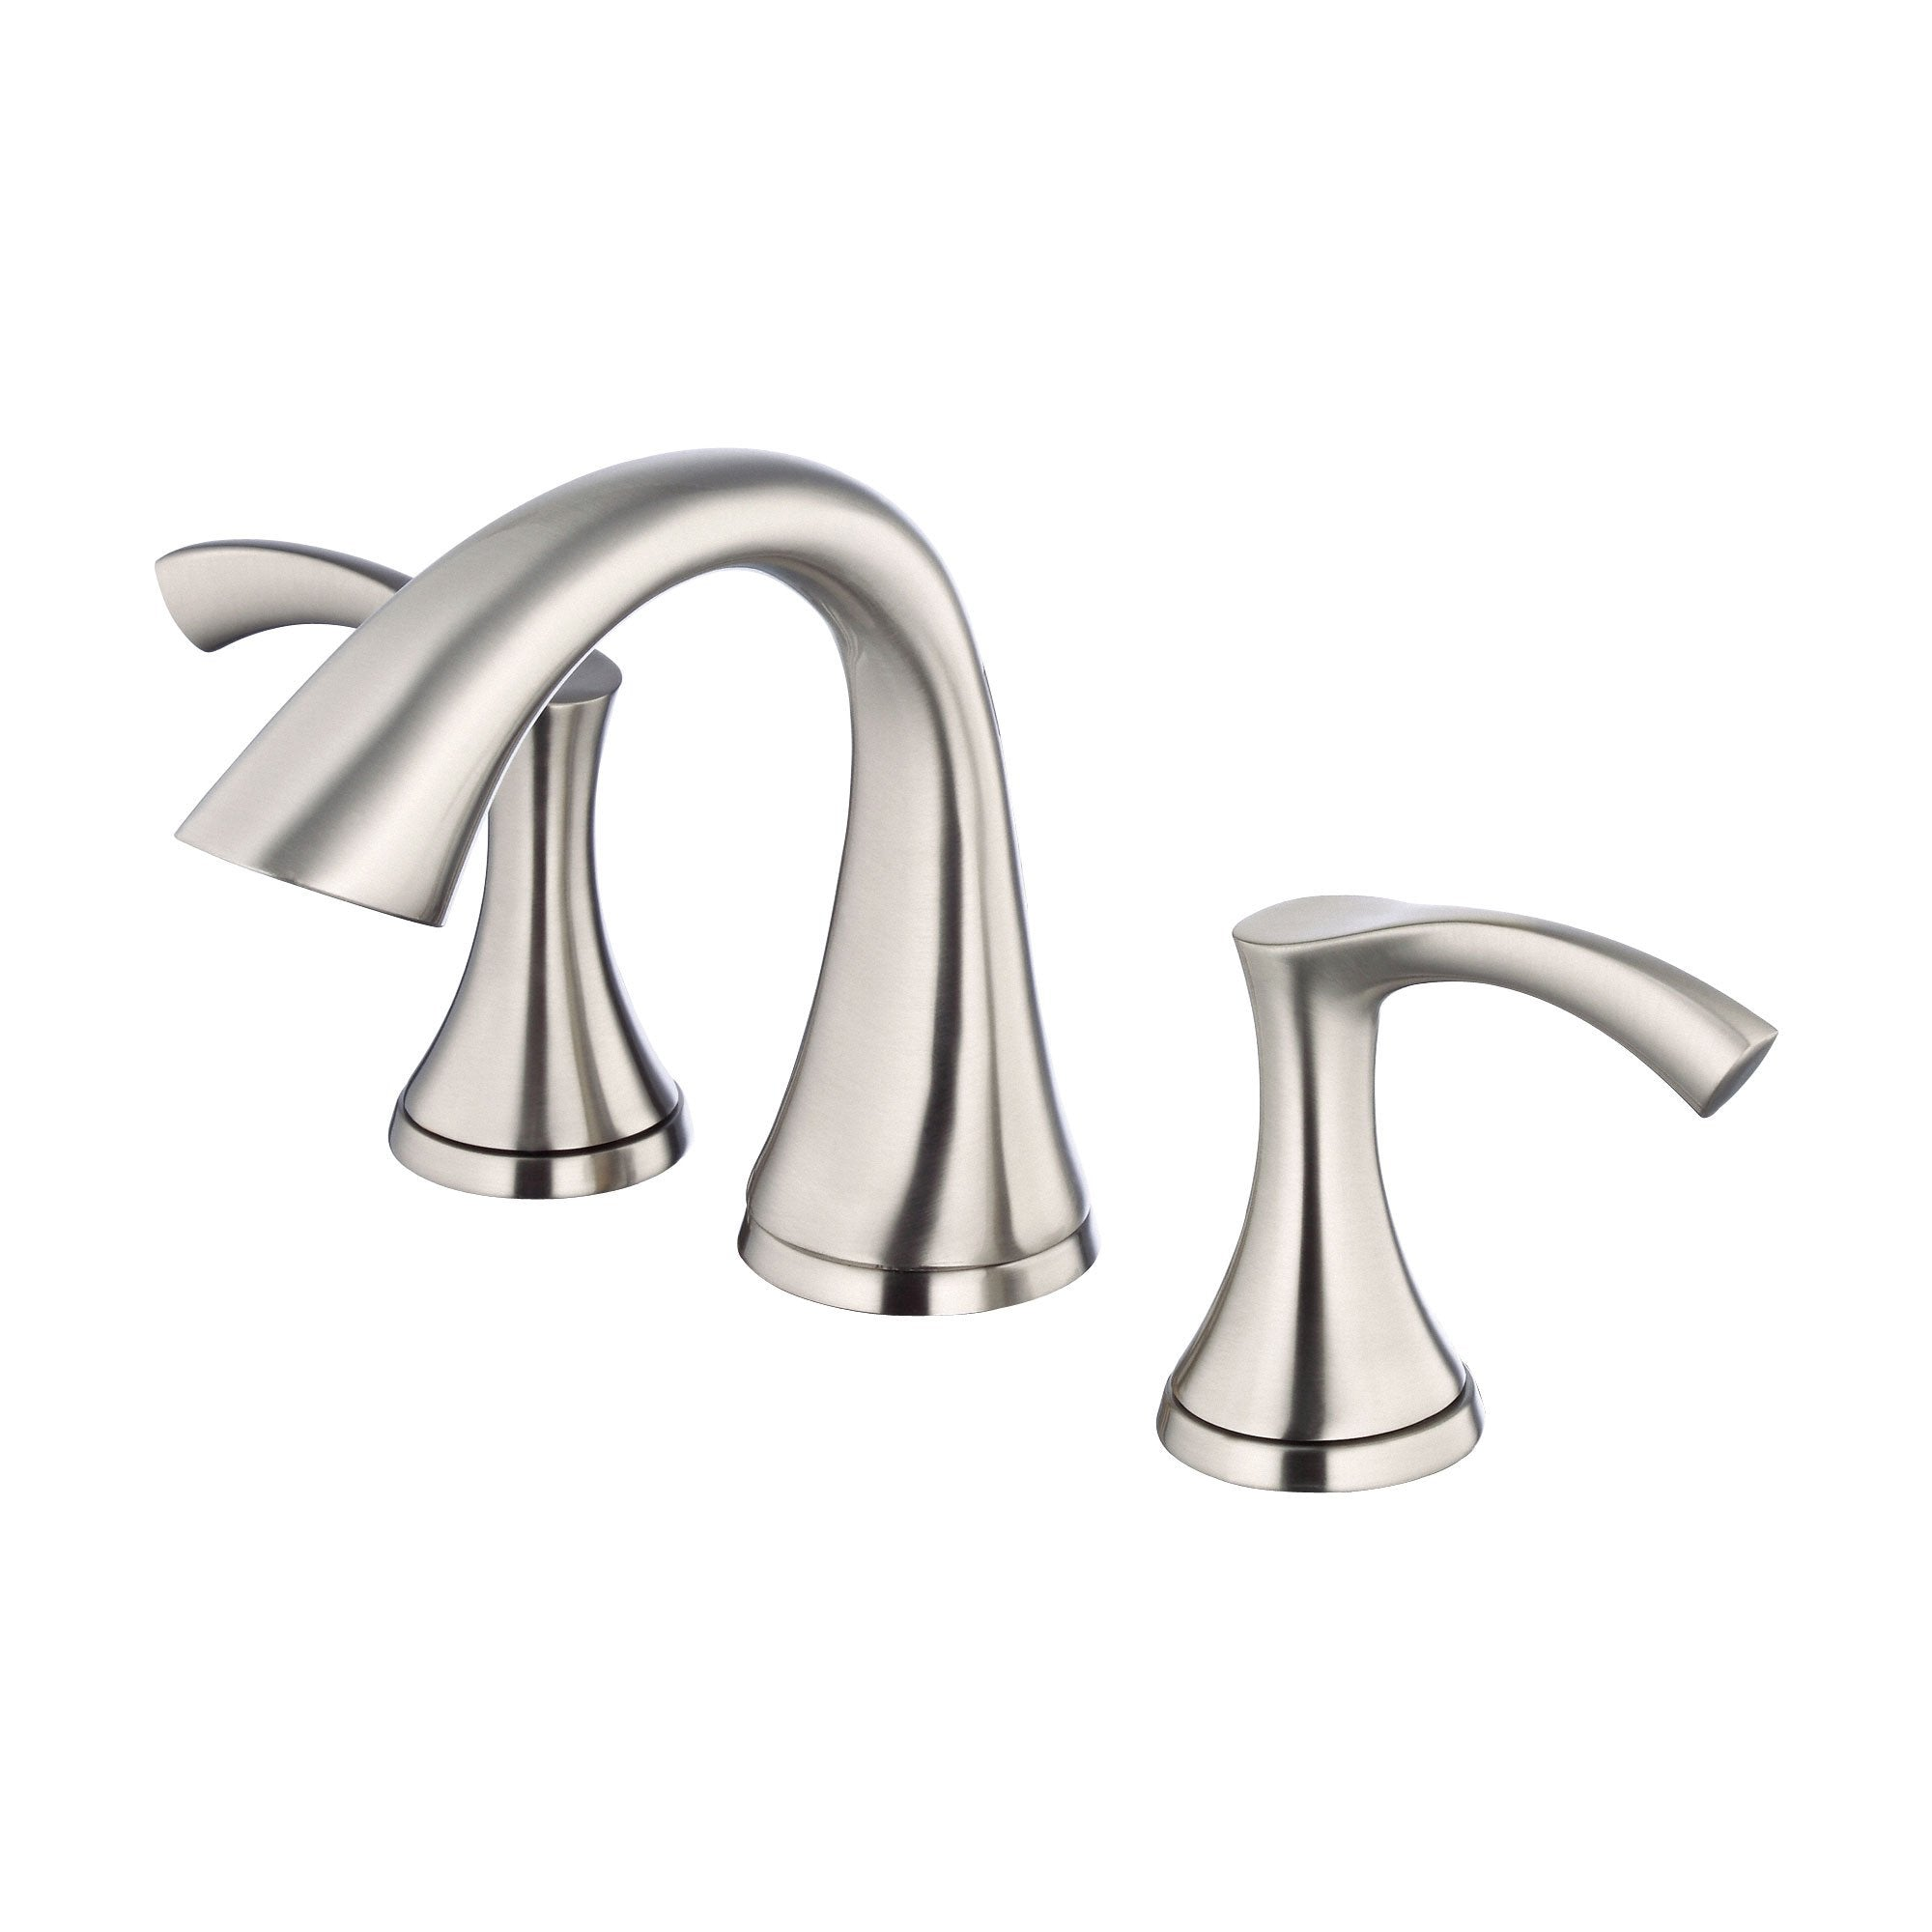 "Danze Antioch Brushed Nickel 8"" 2 Handle Widespread Bathroom Sink Faucet"